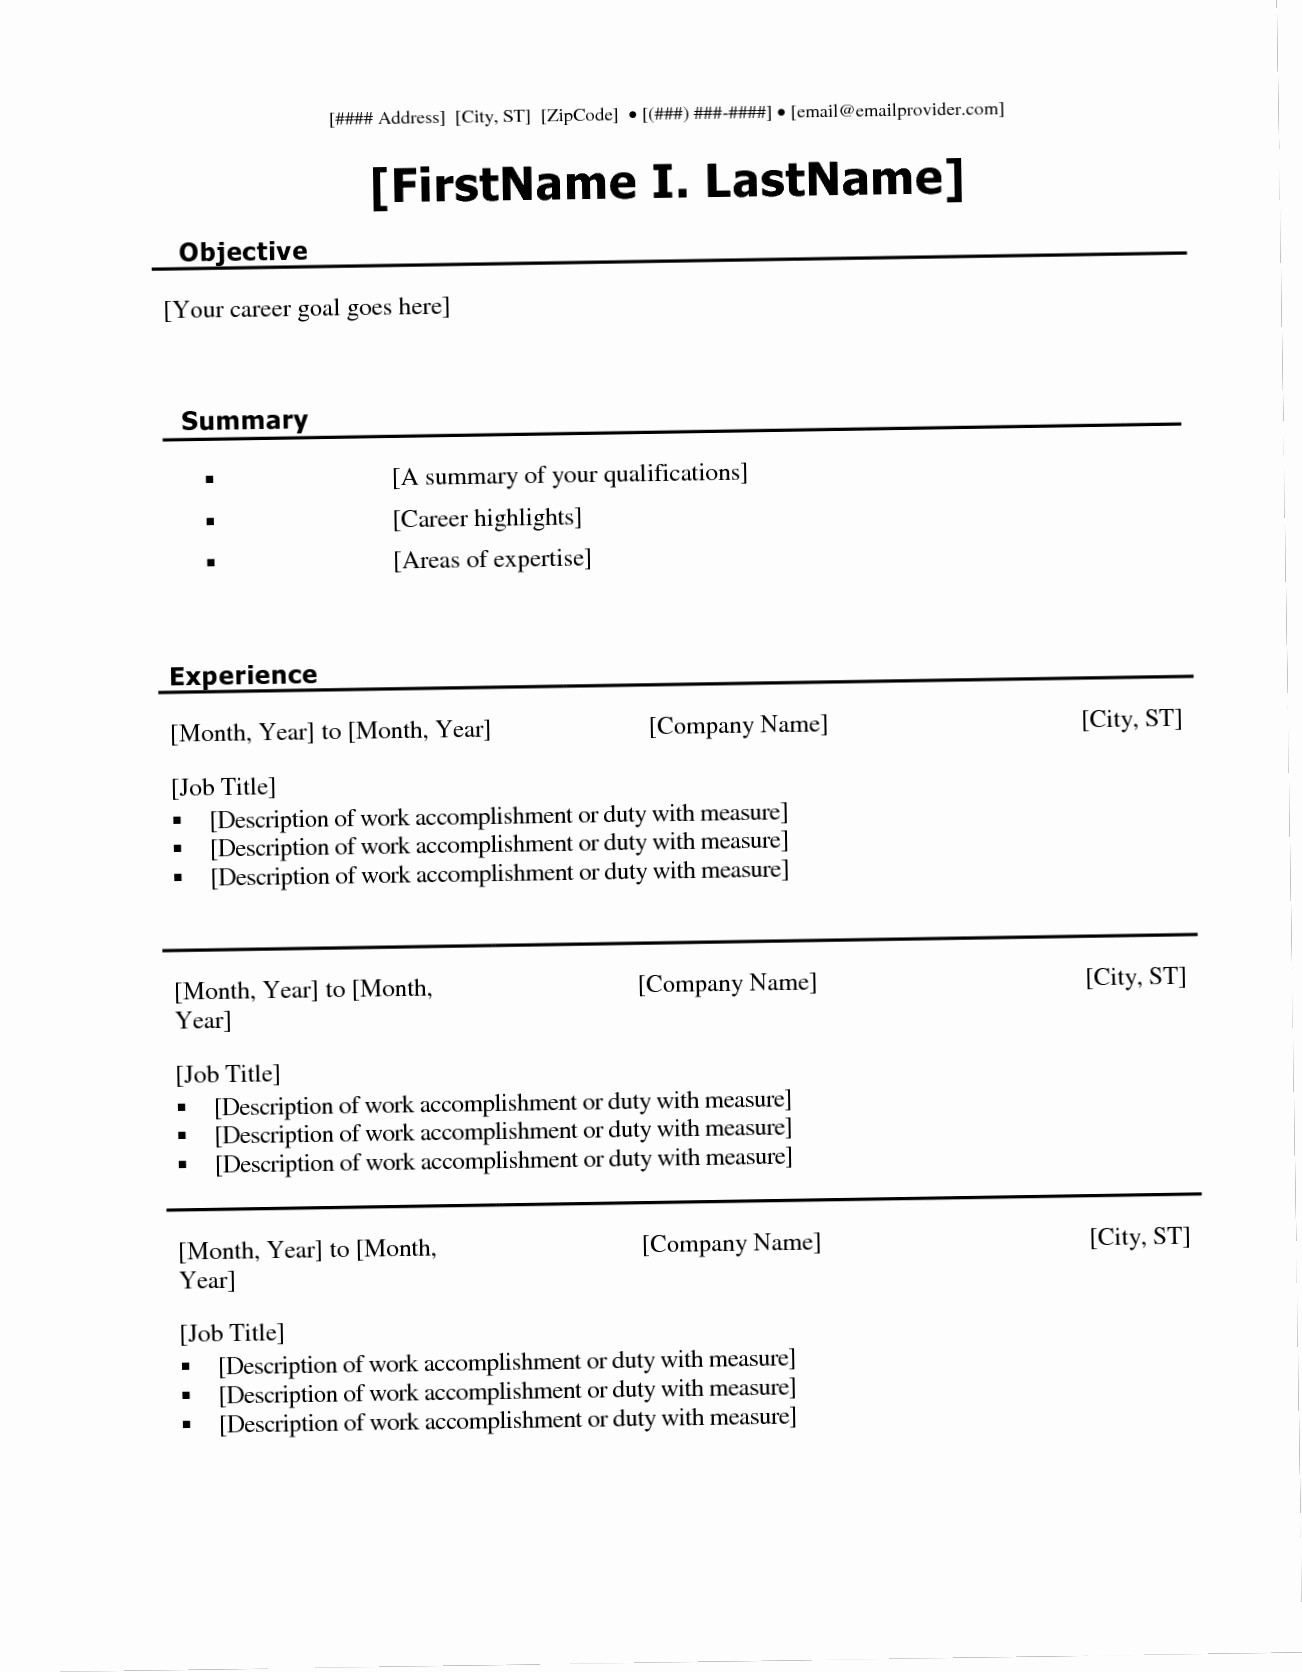 Microsoft Office Resume Templates Downloads Unique Fill In the Blank Resume Templates for Microsoft Word Free